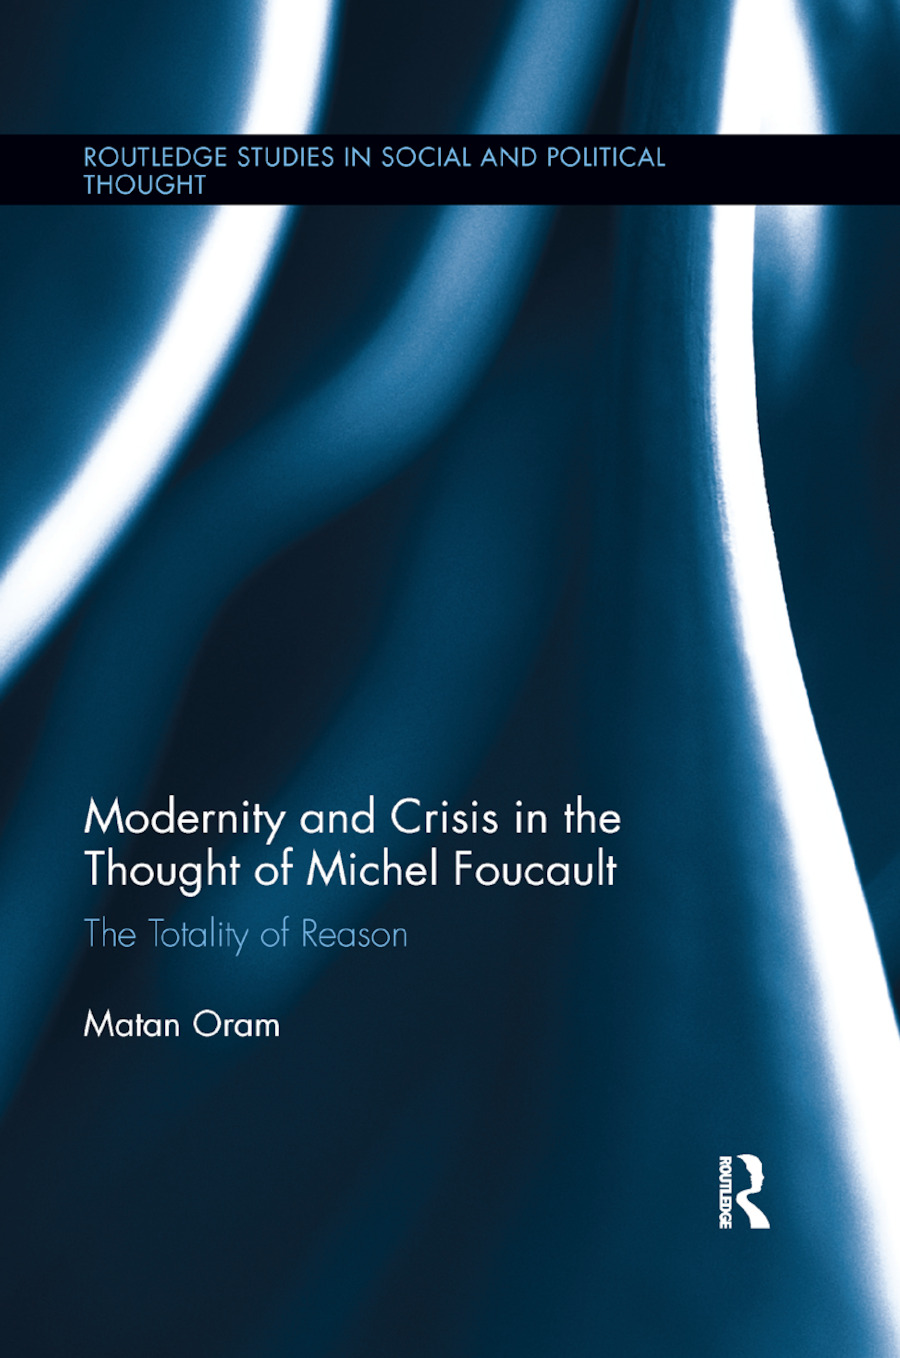 Modernity and Crisis in the Thought of Michel Foucault: The Totality of Reason book cover